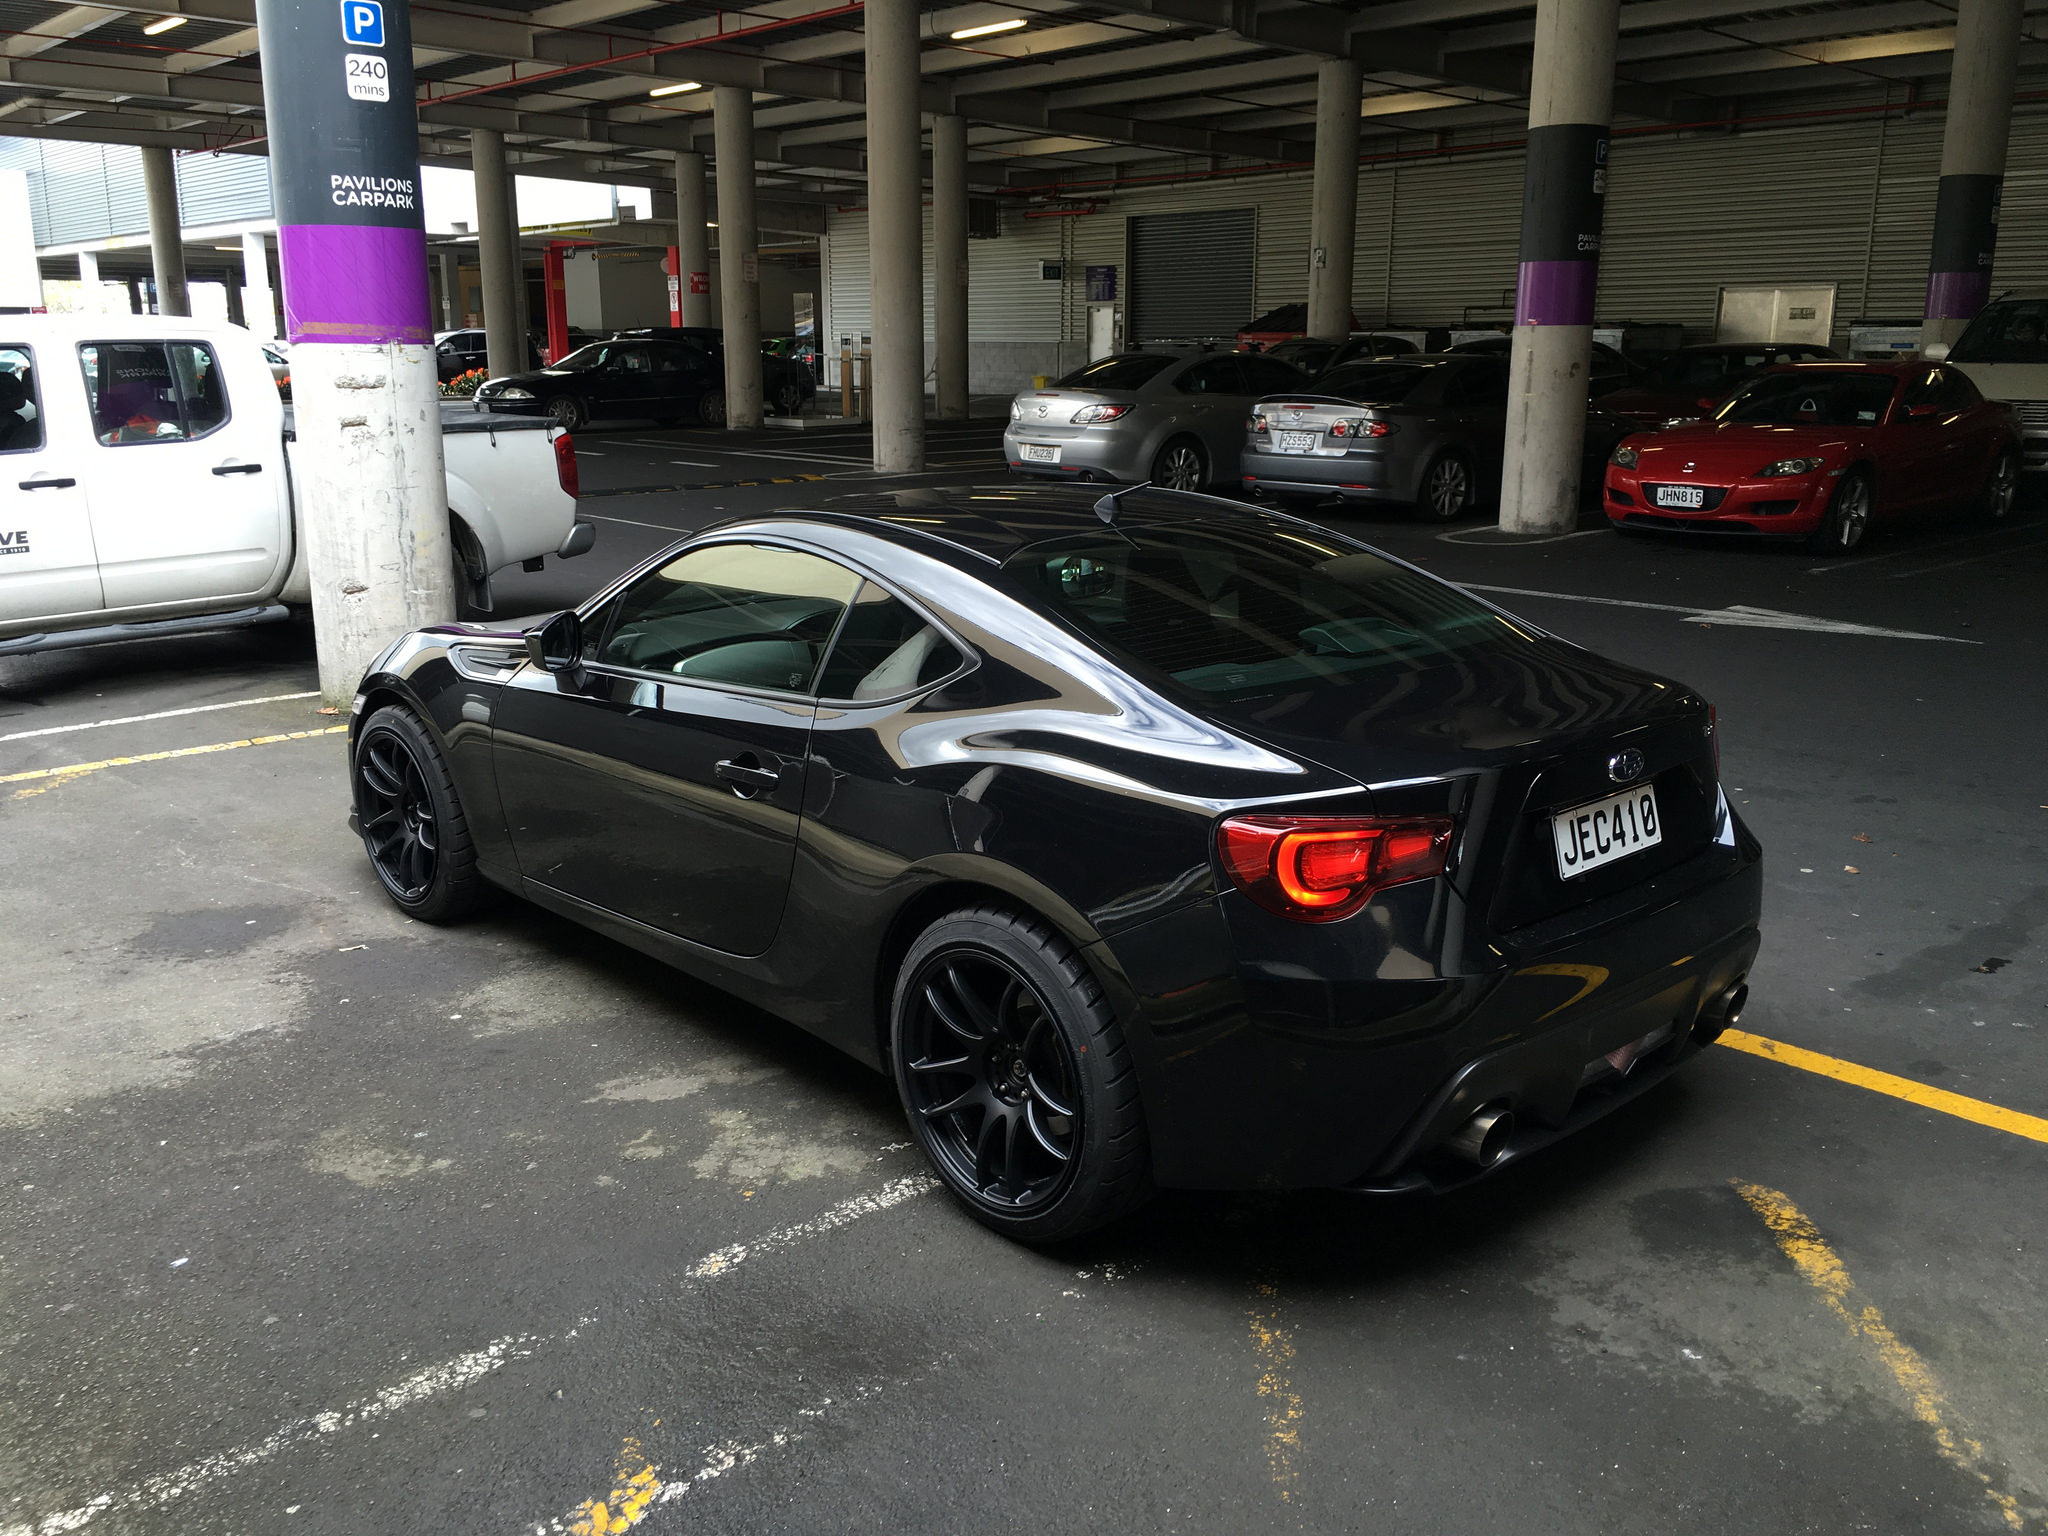 subaru brz custom wheels work kiwami 18x9 5 et 38 tire. Black Bedroom Furniture Sets. Home Design Ideas